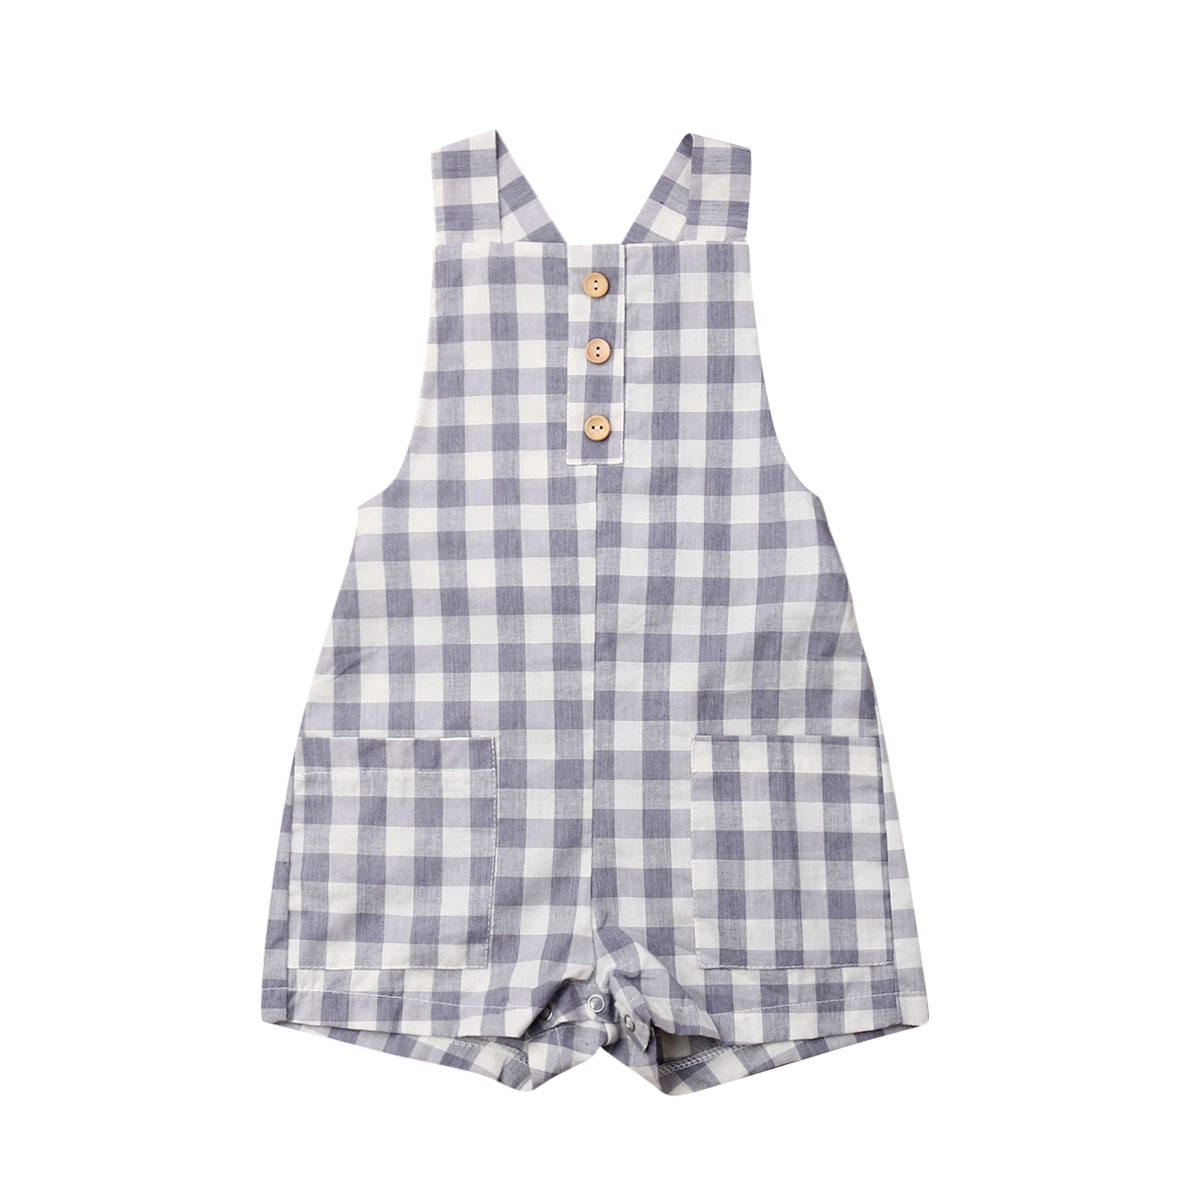 Summer Newborn Baby Boy Girl Sleeveless Back Cross Plaid Pocket   Romper   Jumpsuit Playsuit Outfits Clothes 0-24M